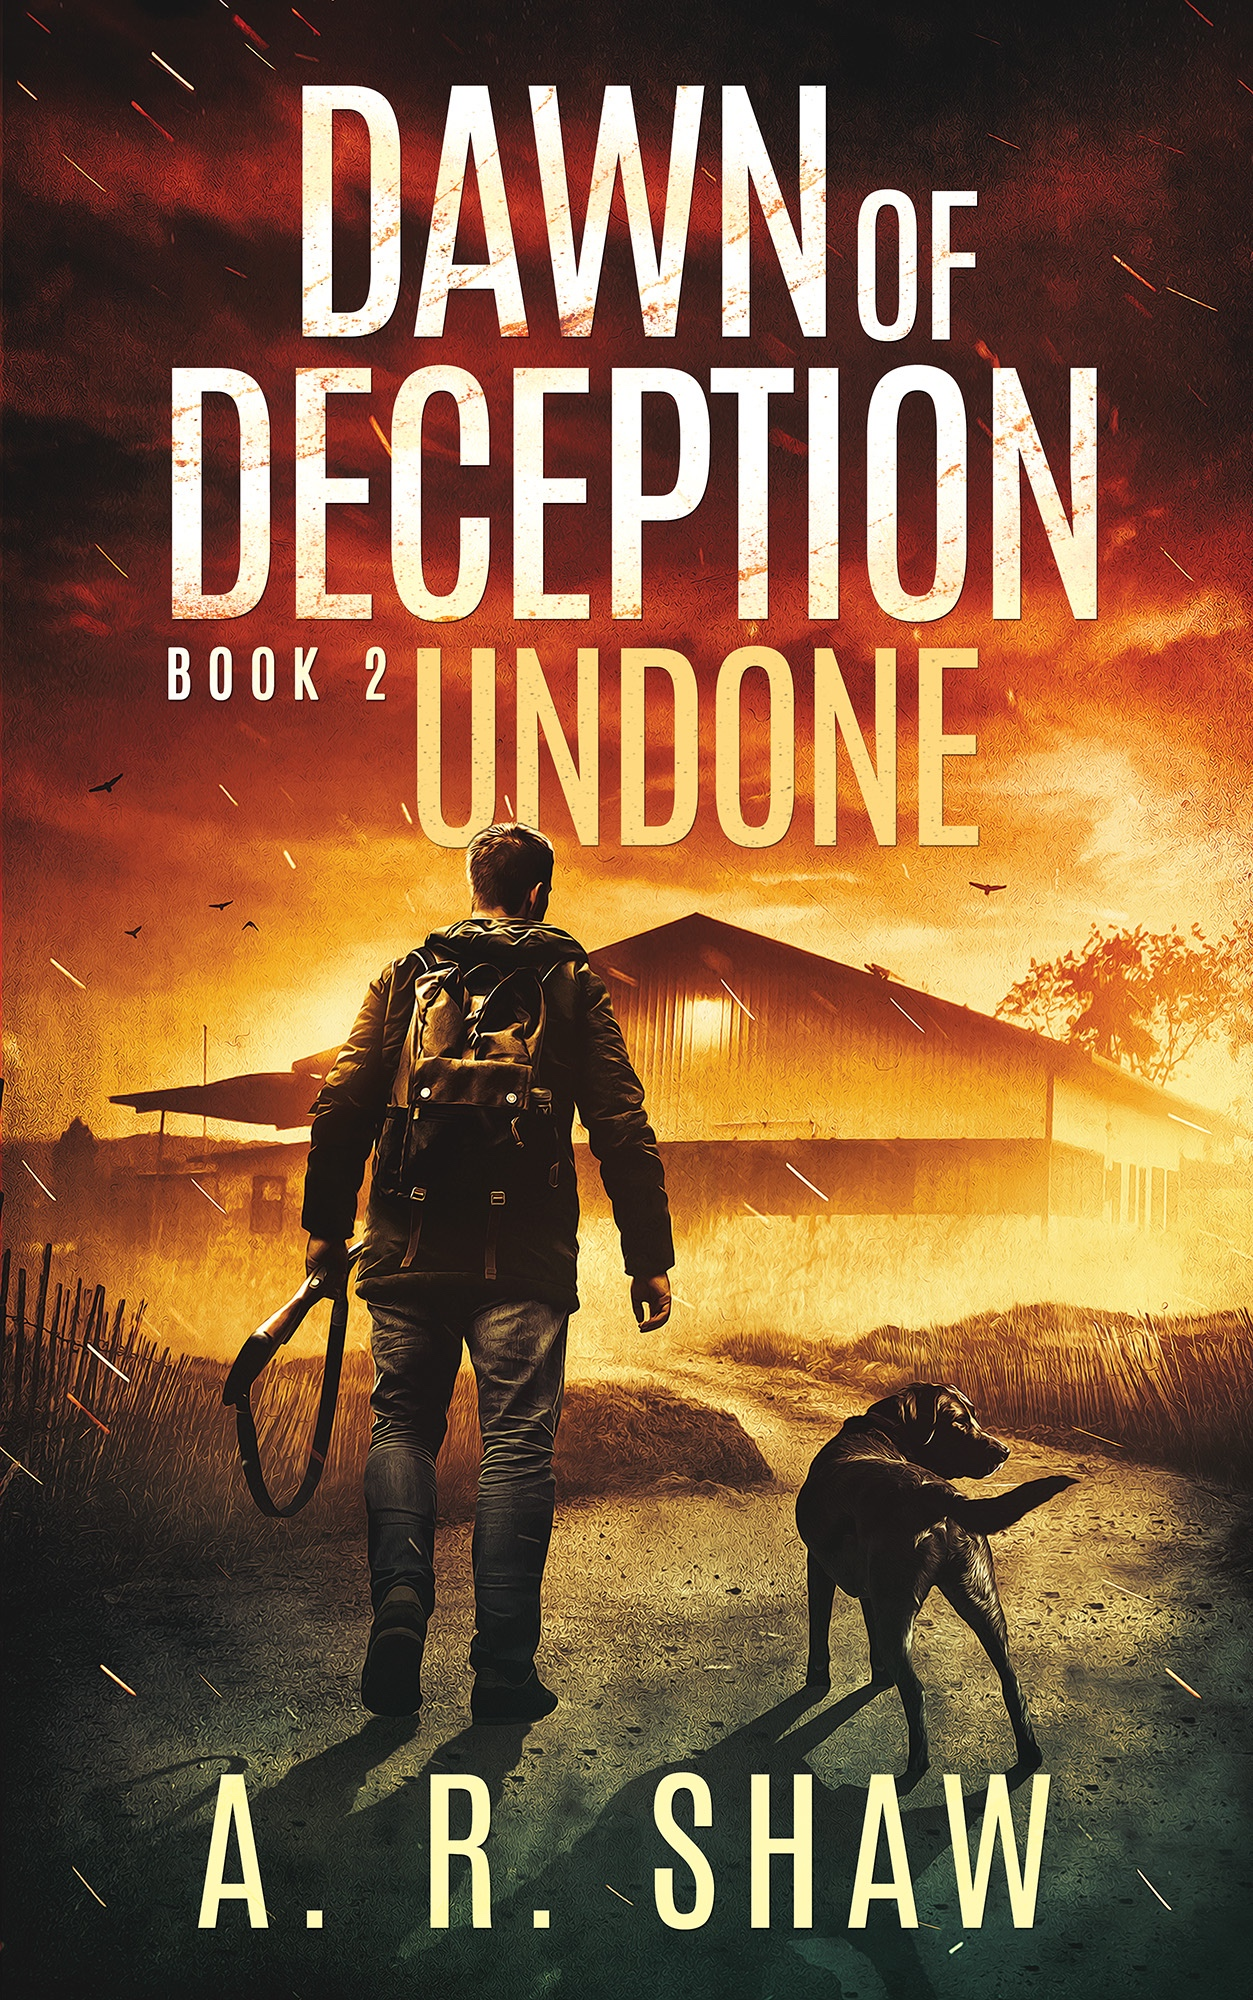 Dawn of Deception - Undone - Book 2 - Sometimes you just have to fight.Read FREE on Kindle Unlimited how author A. R. Shaw delivers another far too plausible post-apocalyptic scenario challenging human survival.* Though she prepared, her most precious commodity is taken from her. * With pure will, Sloane Delaney finds a way to fight back. * Kent finds, despite his lack of skills, he'll do anything to save those he's come to love. * Wren lives through a horror no one imagined.___________________________________________